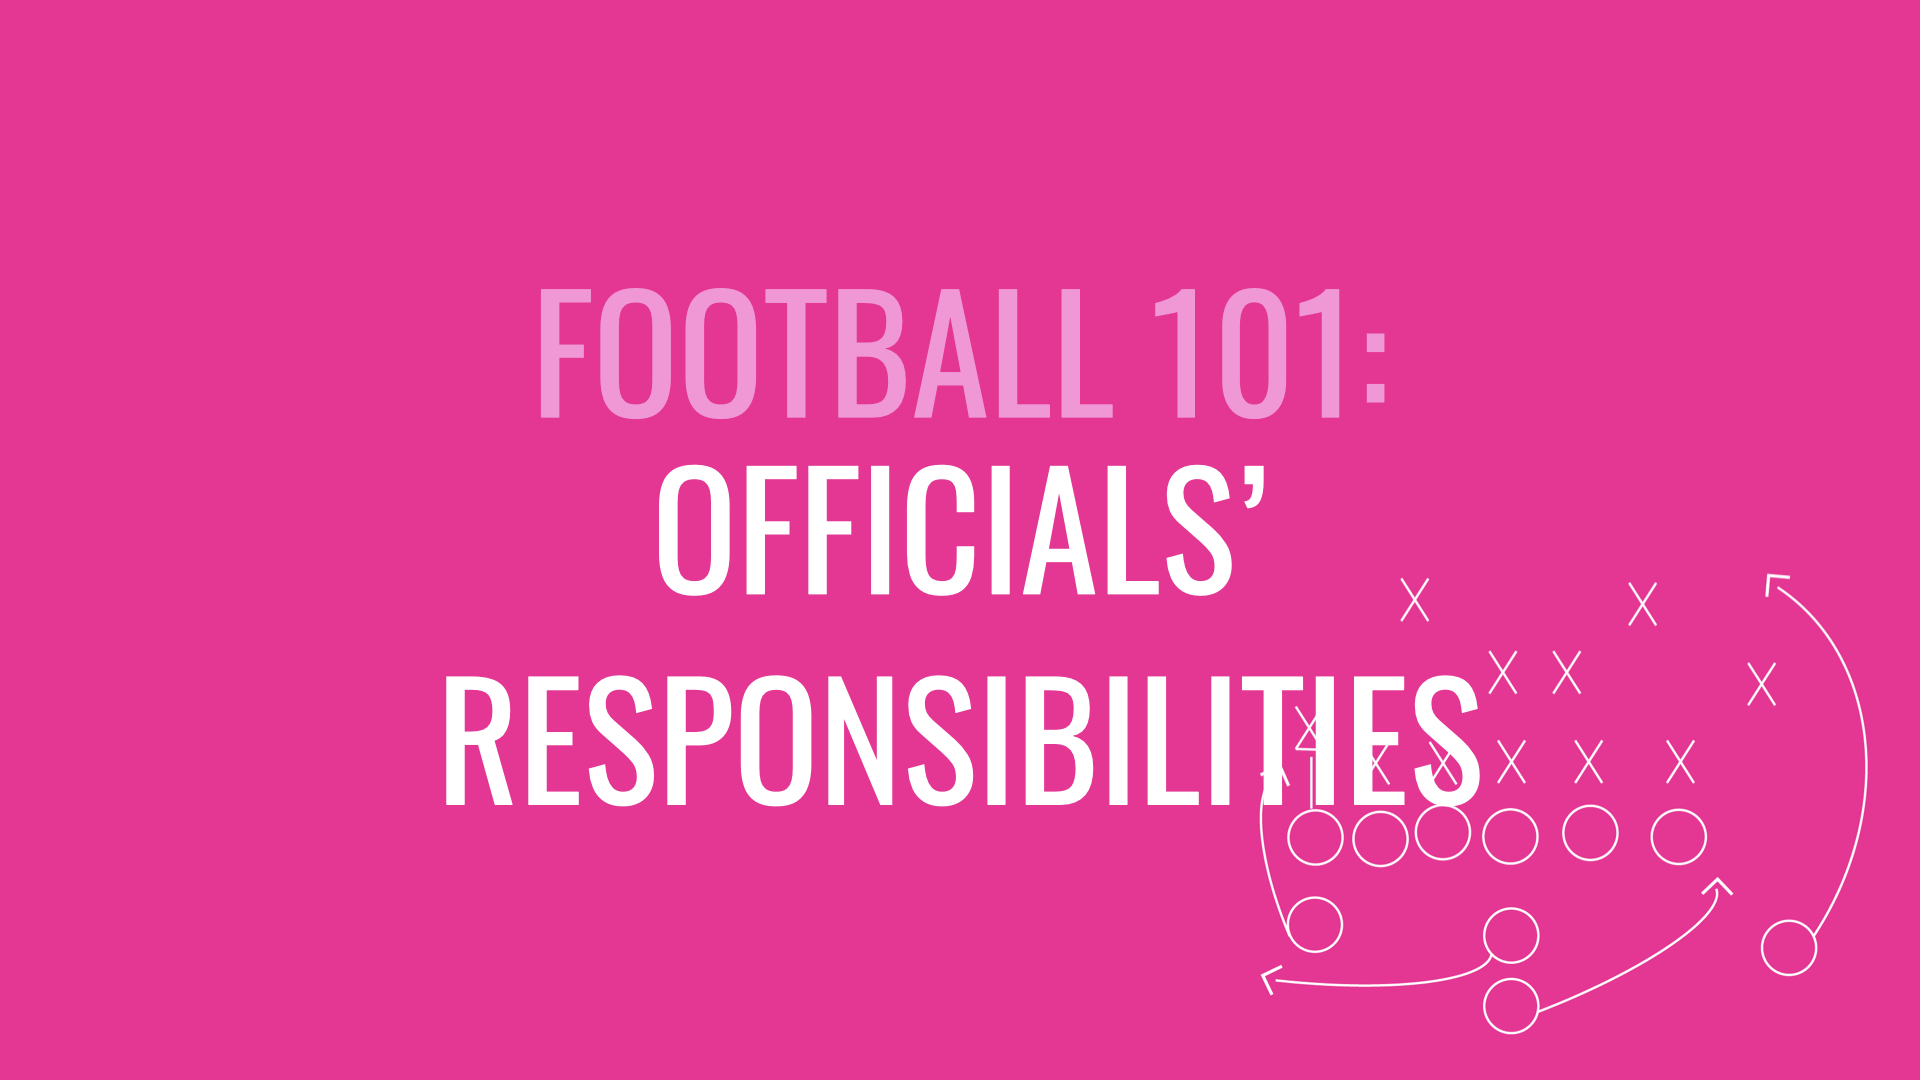 Officials' responsibilities